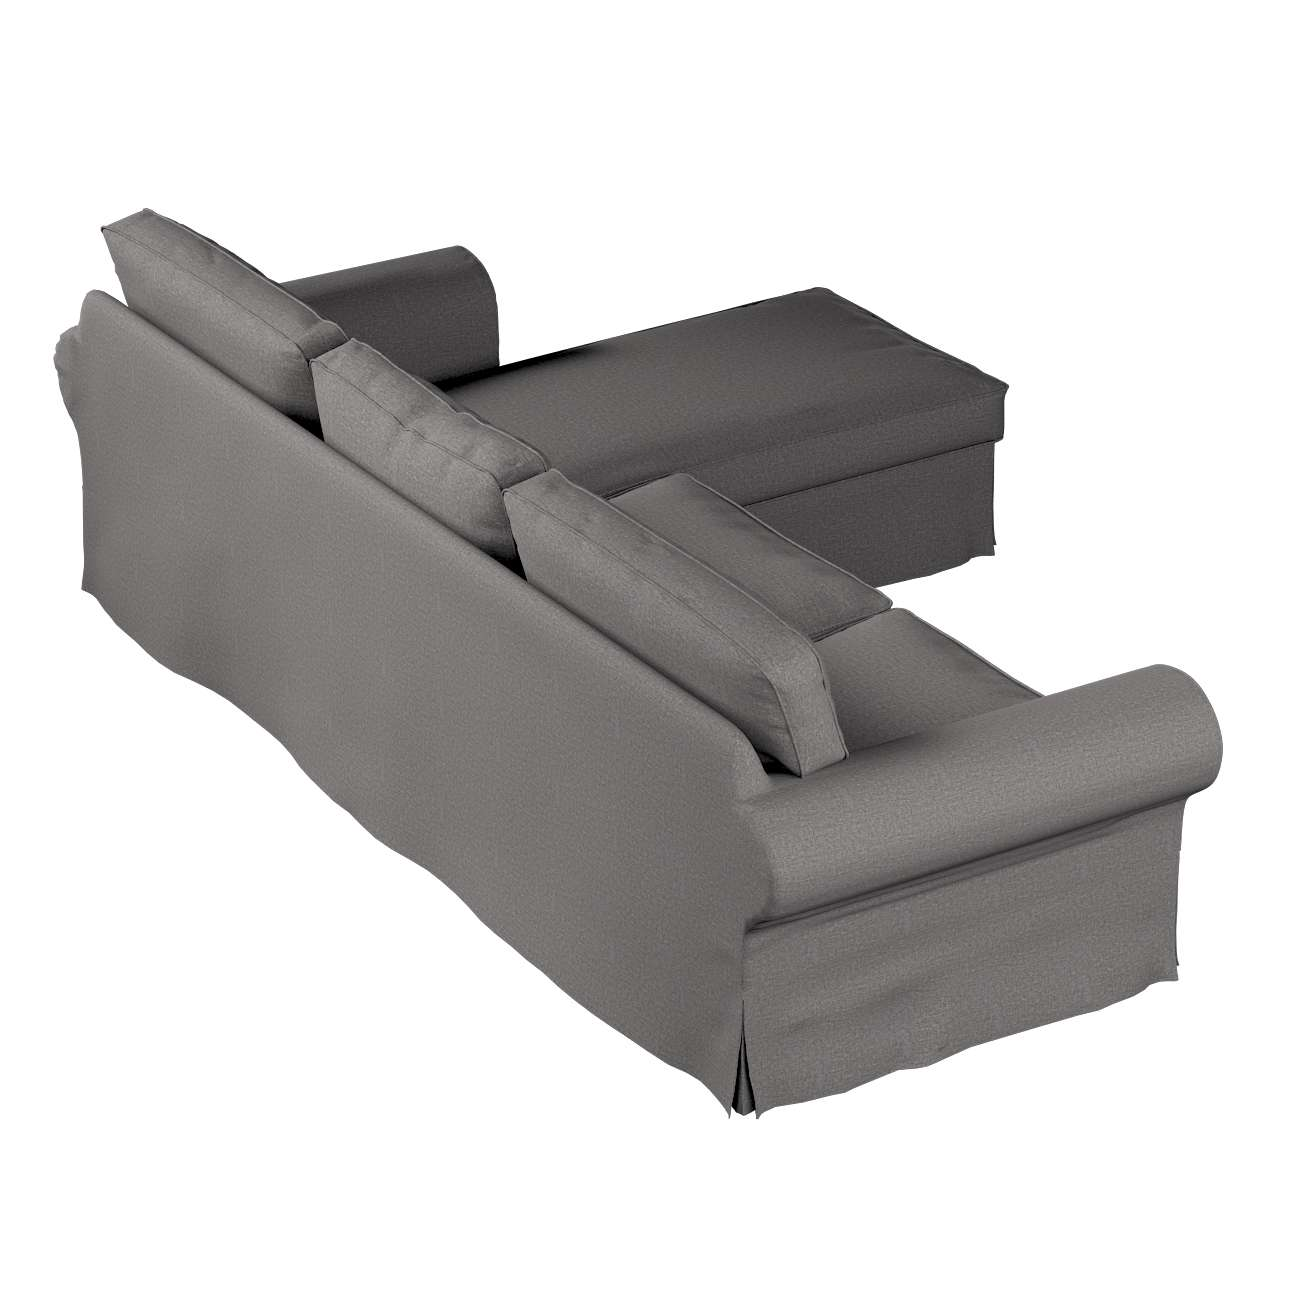 Ektorp 2 Seater Sofa With Chaise Longue Cover Grey Ektorp 2 Seat Sofa With Chaise Longue Cover